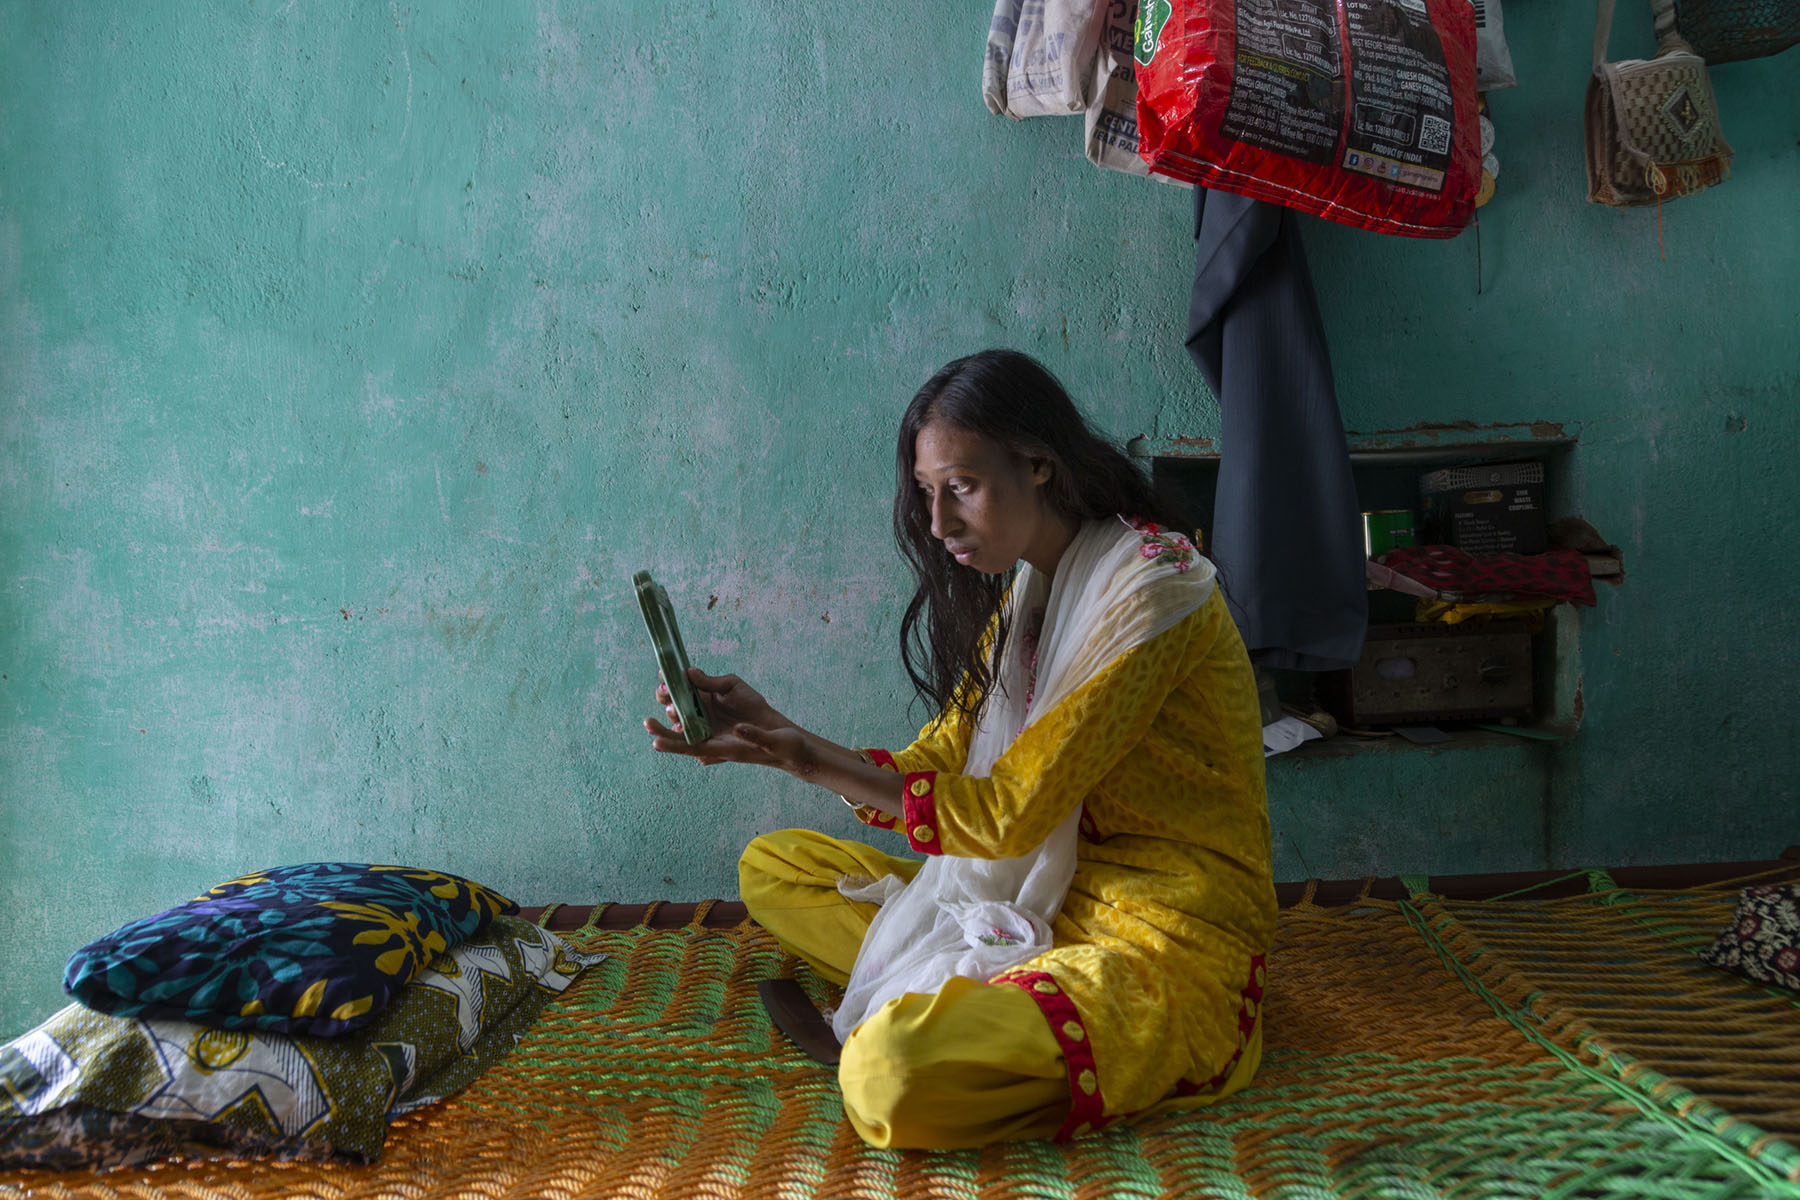 Roji sits cross-legged on a charpoy in a room with blue walls. Dressed in yellow salwar-kameez and white dupatta, she is looking into a small mirror that she holds with both hands. Her hair is open and falls around her back and shoulders. The charpoy is woven with orange and green plastic rope. It has two pillows with multi-coloured covers.